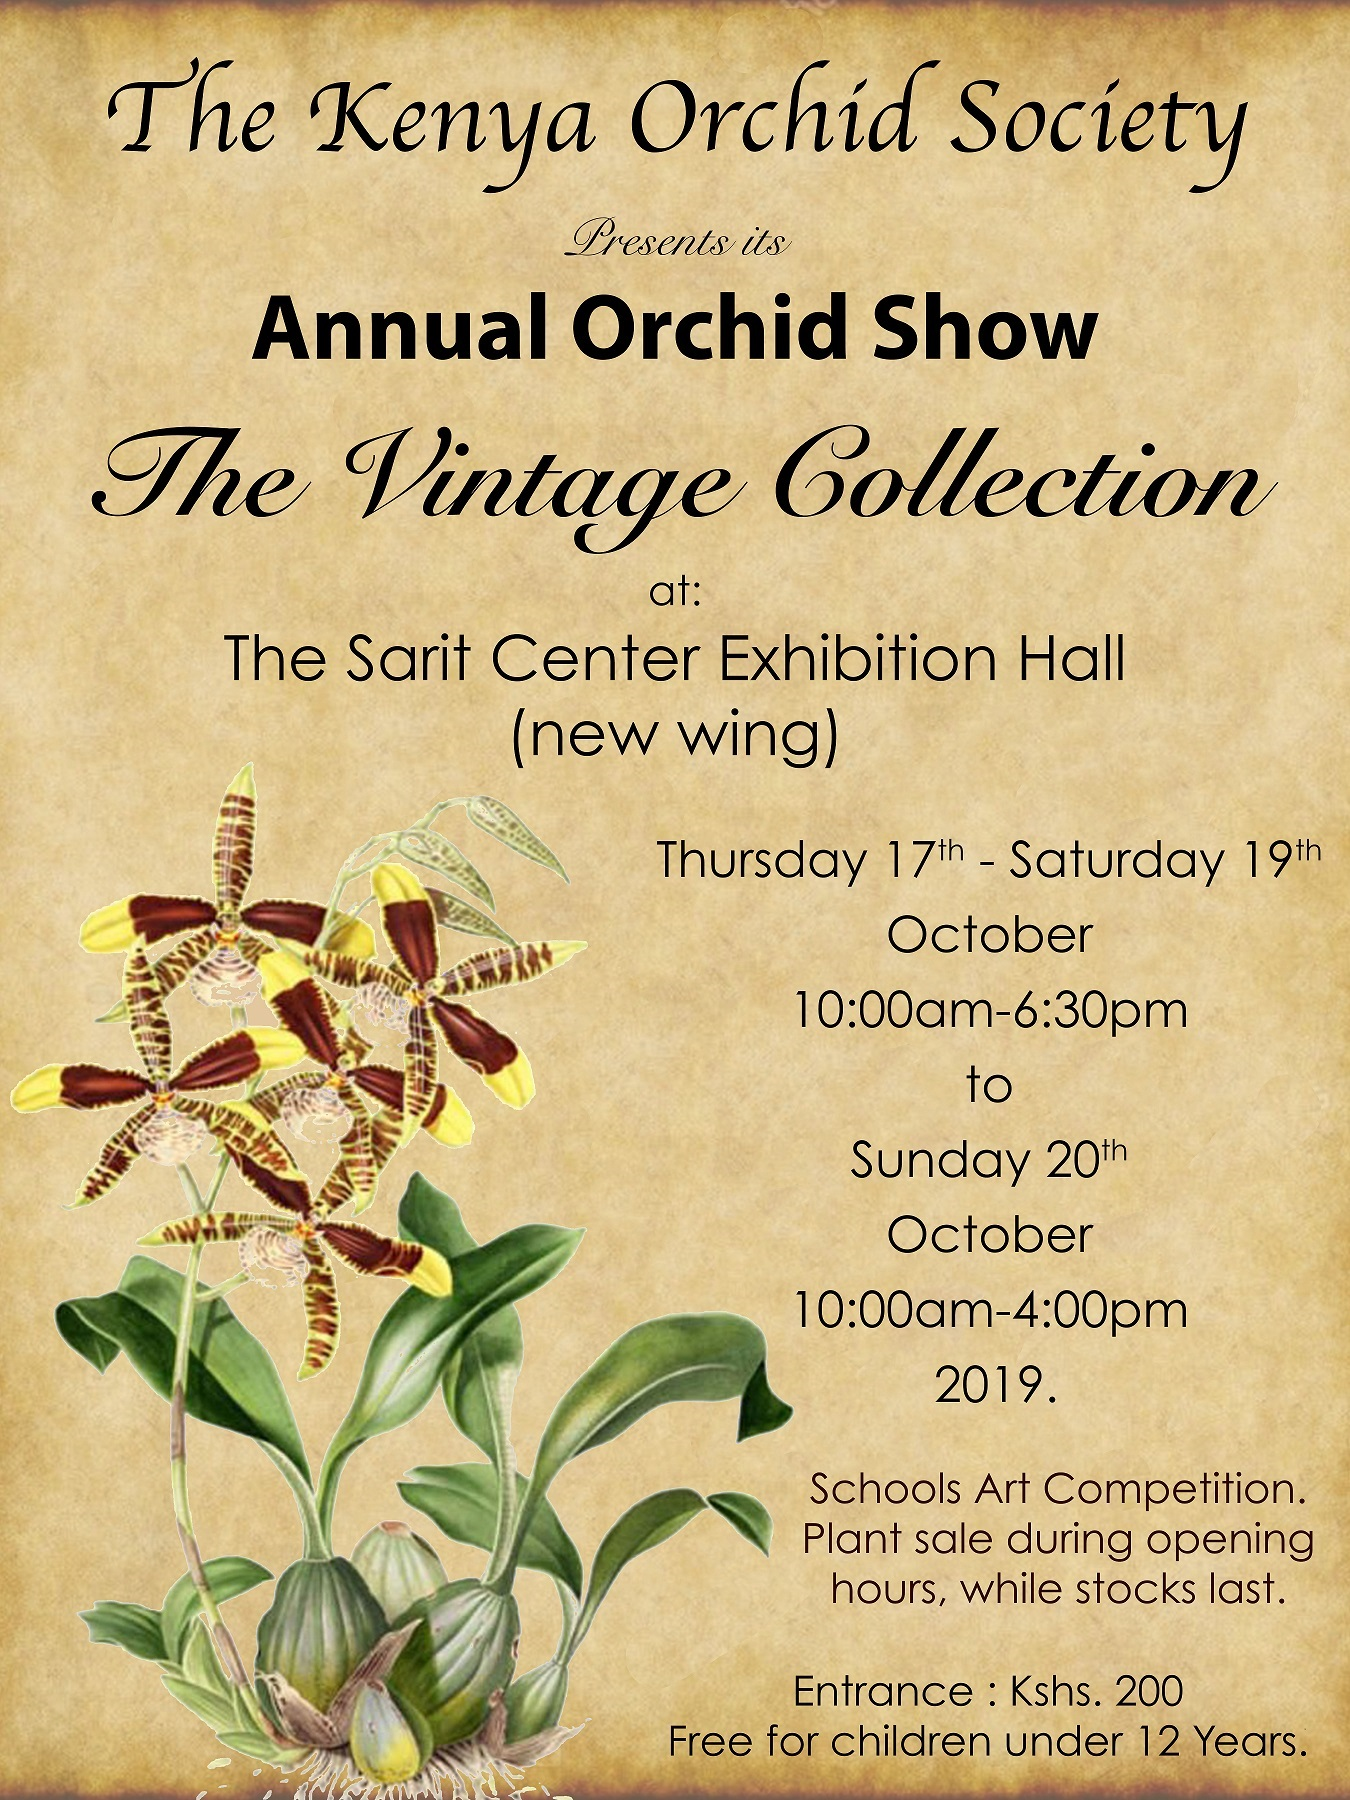 Annual Orchid Show: The Vintage Edition